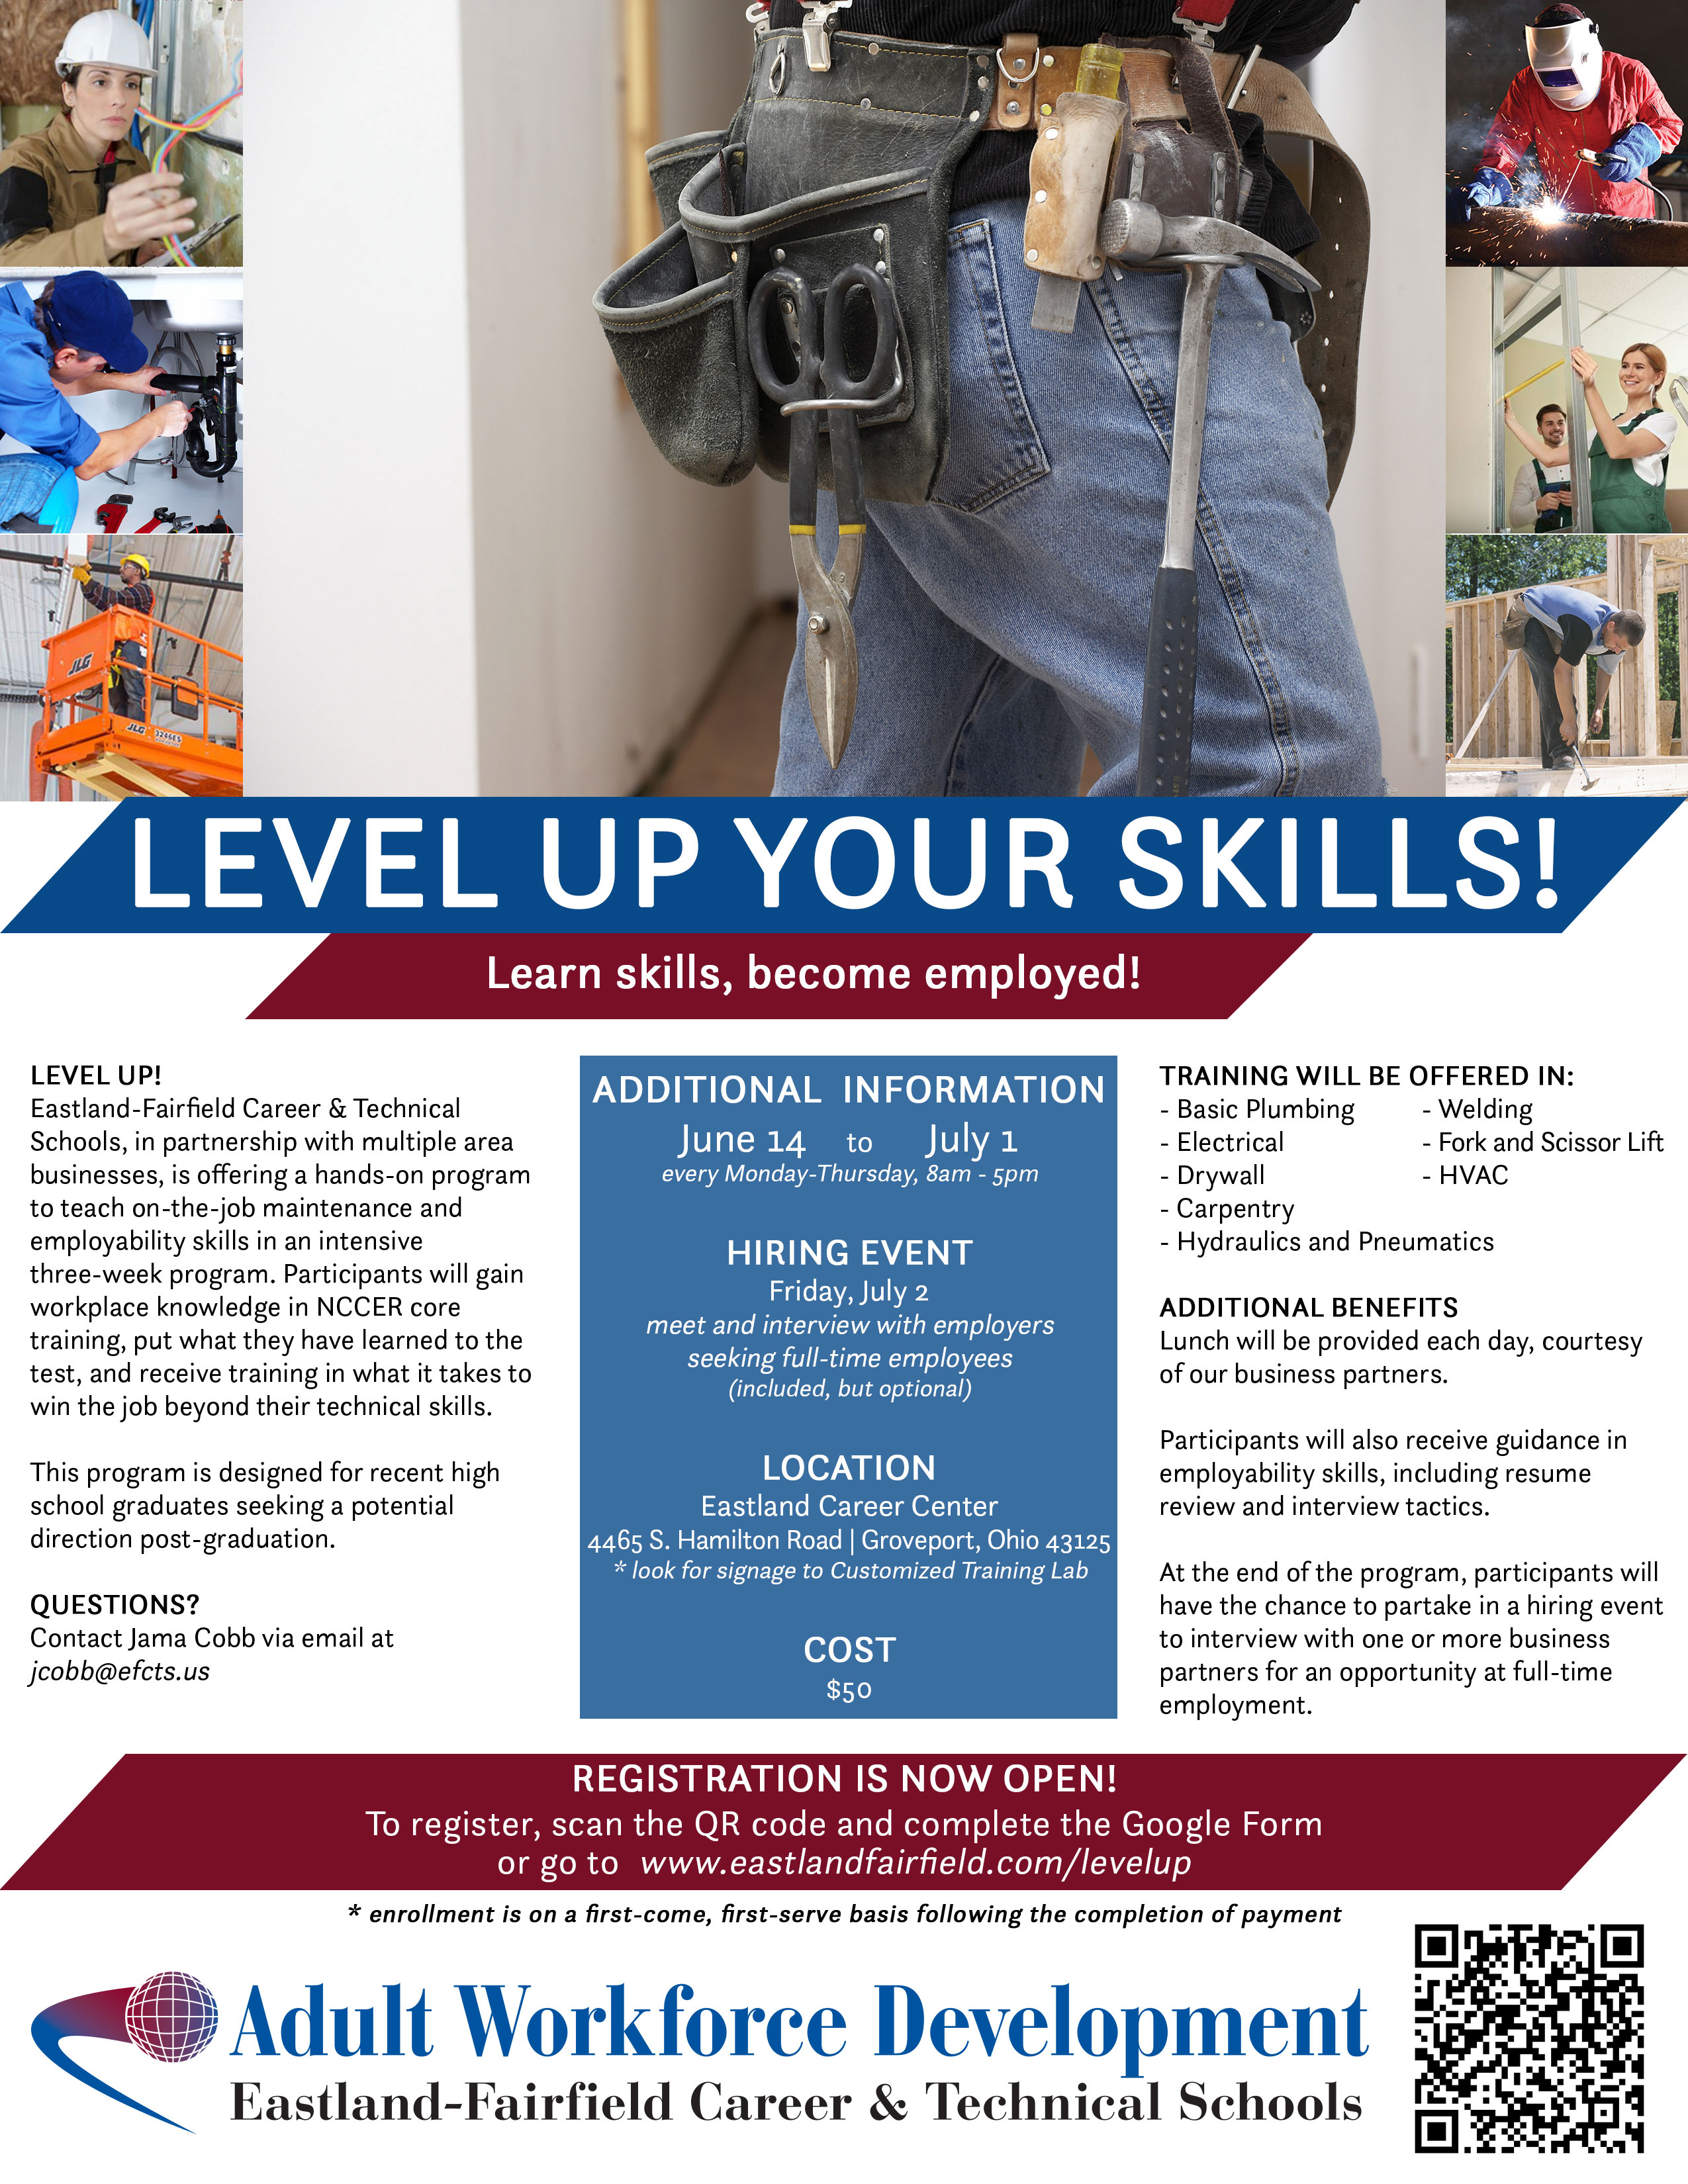 Level Up Your Skills Flyer